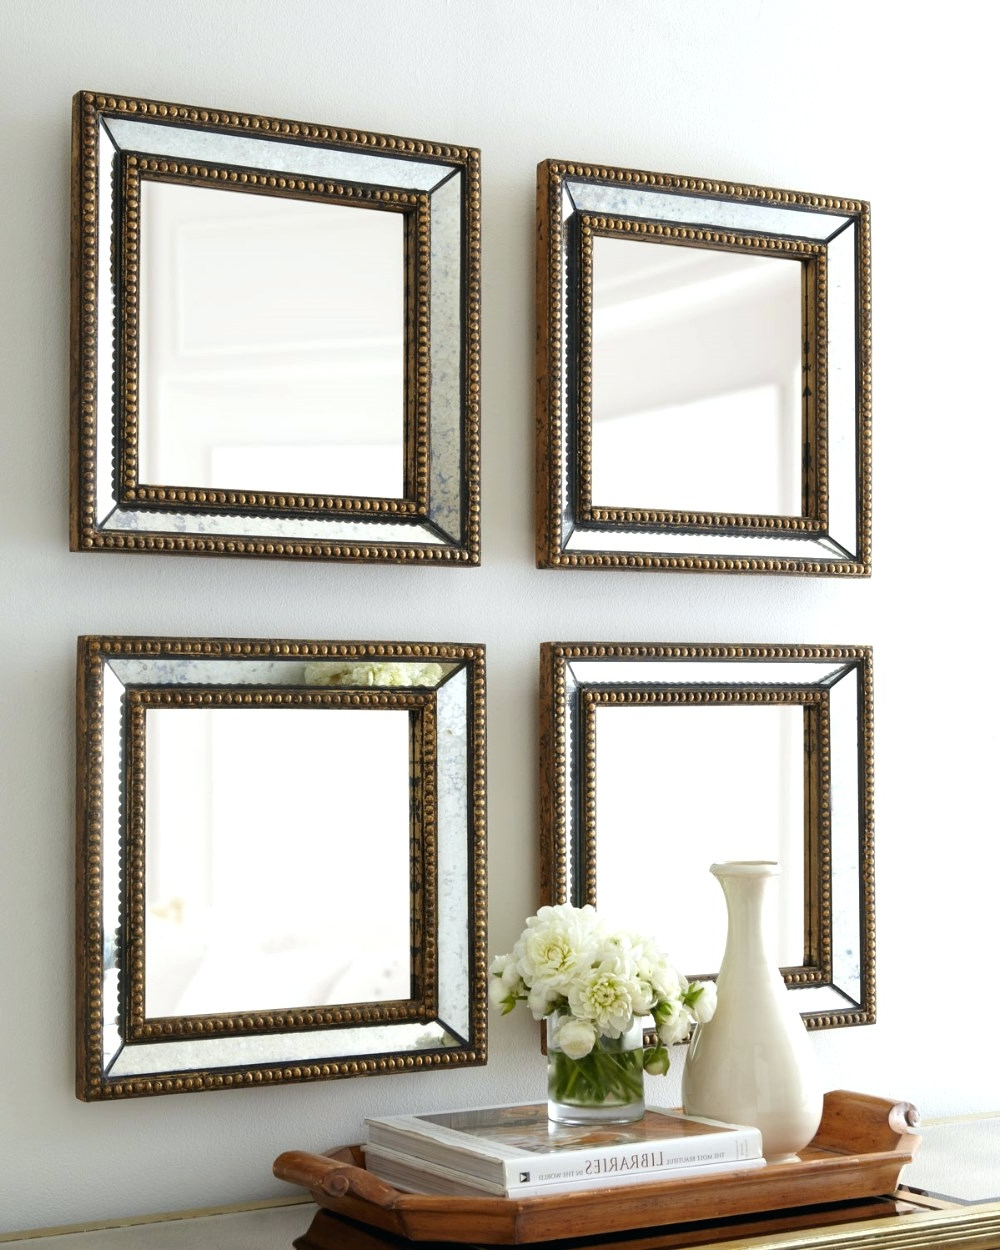 Small Decorative Wall Mirror Set Walls Decor Throughout Within Recent Small Decorative Wall Mirror Sets (View 14 of 20)